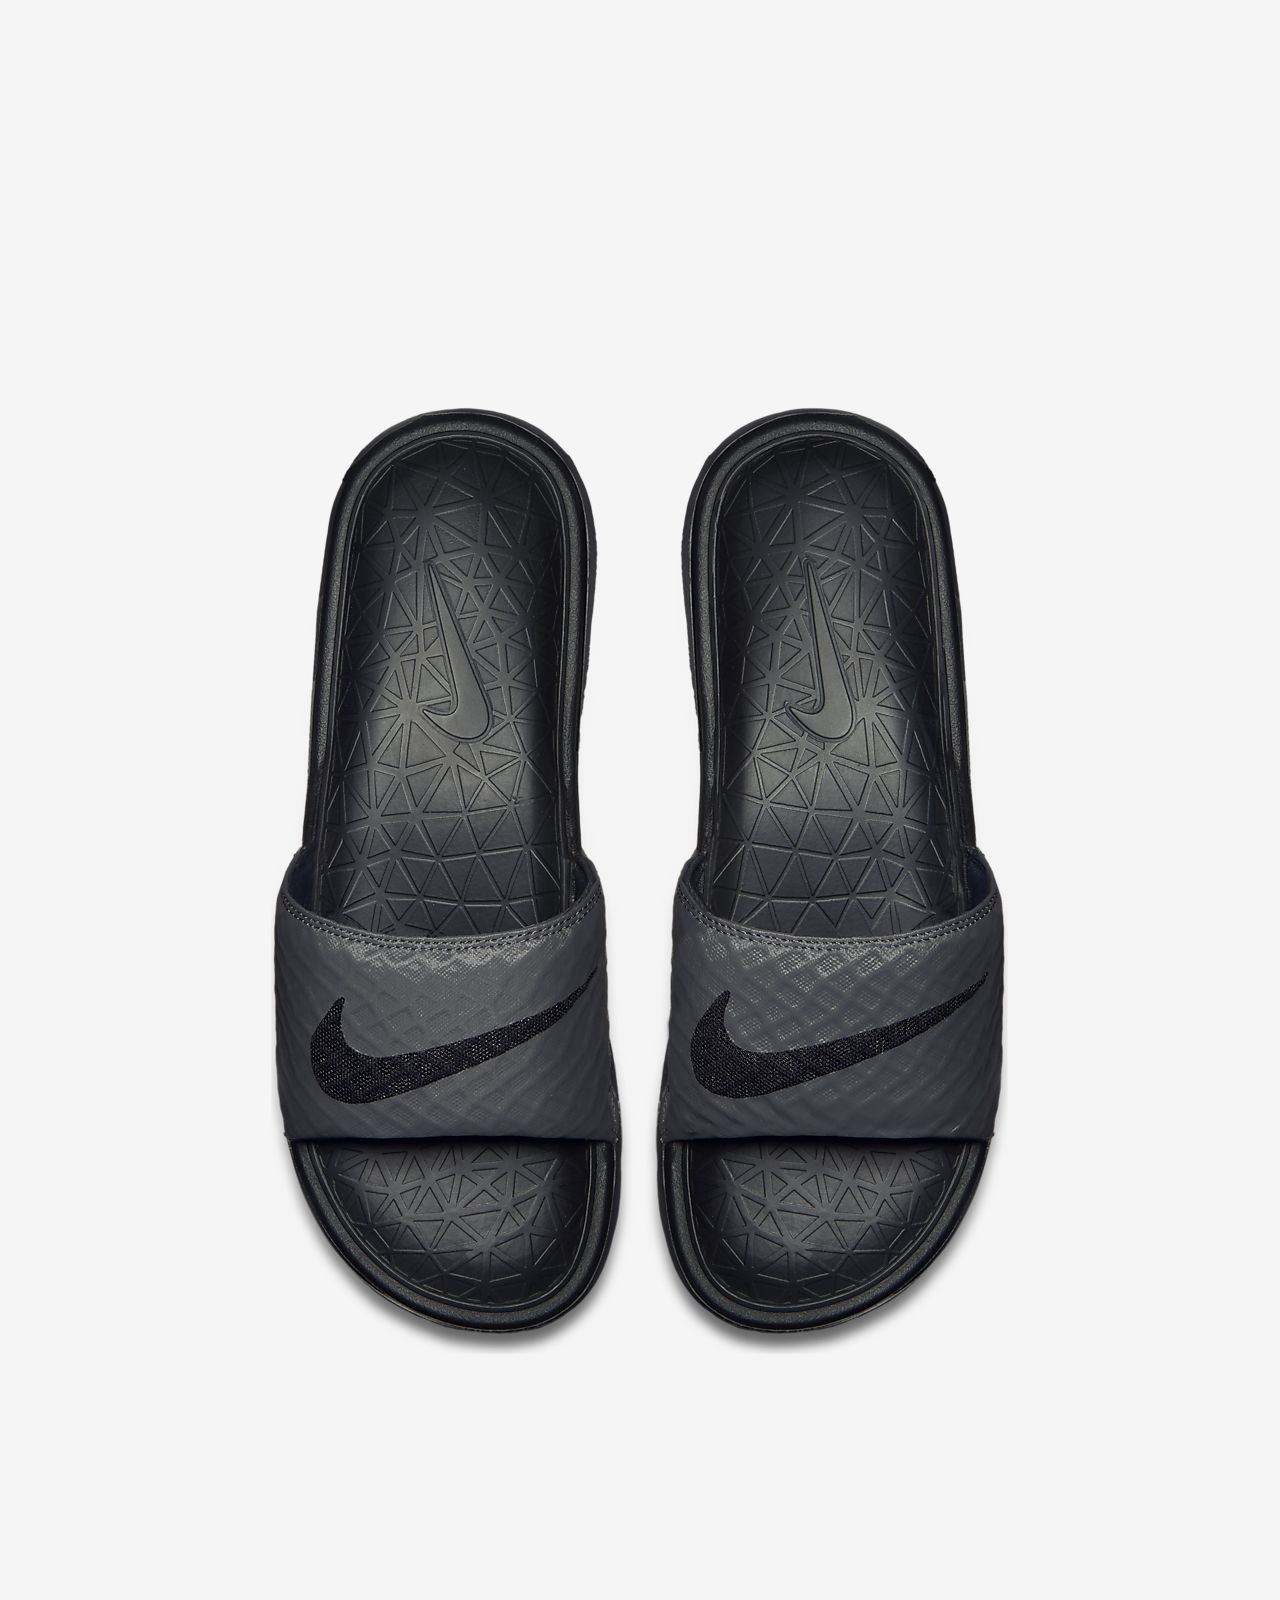 90059b924 Nike Benassi Solarsoft 2 Men s Slide. Nike.com GB